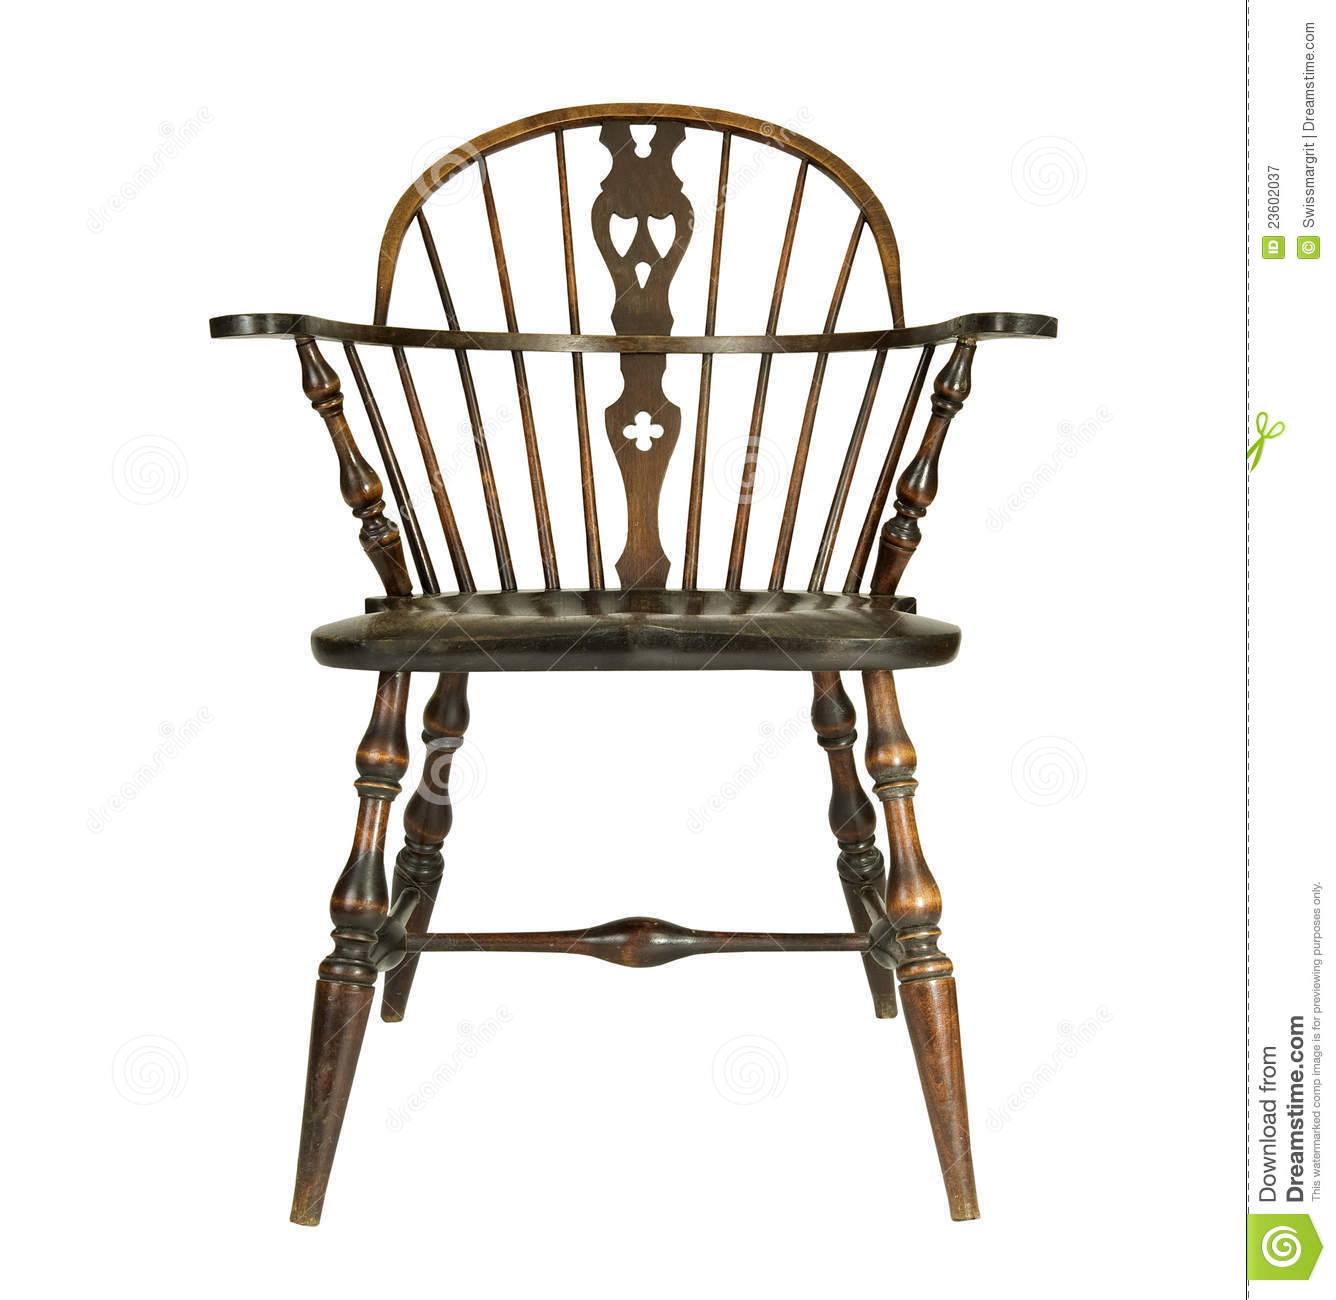 antique windsor chair identification dining room chairs upholstered type royalty free stock photography